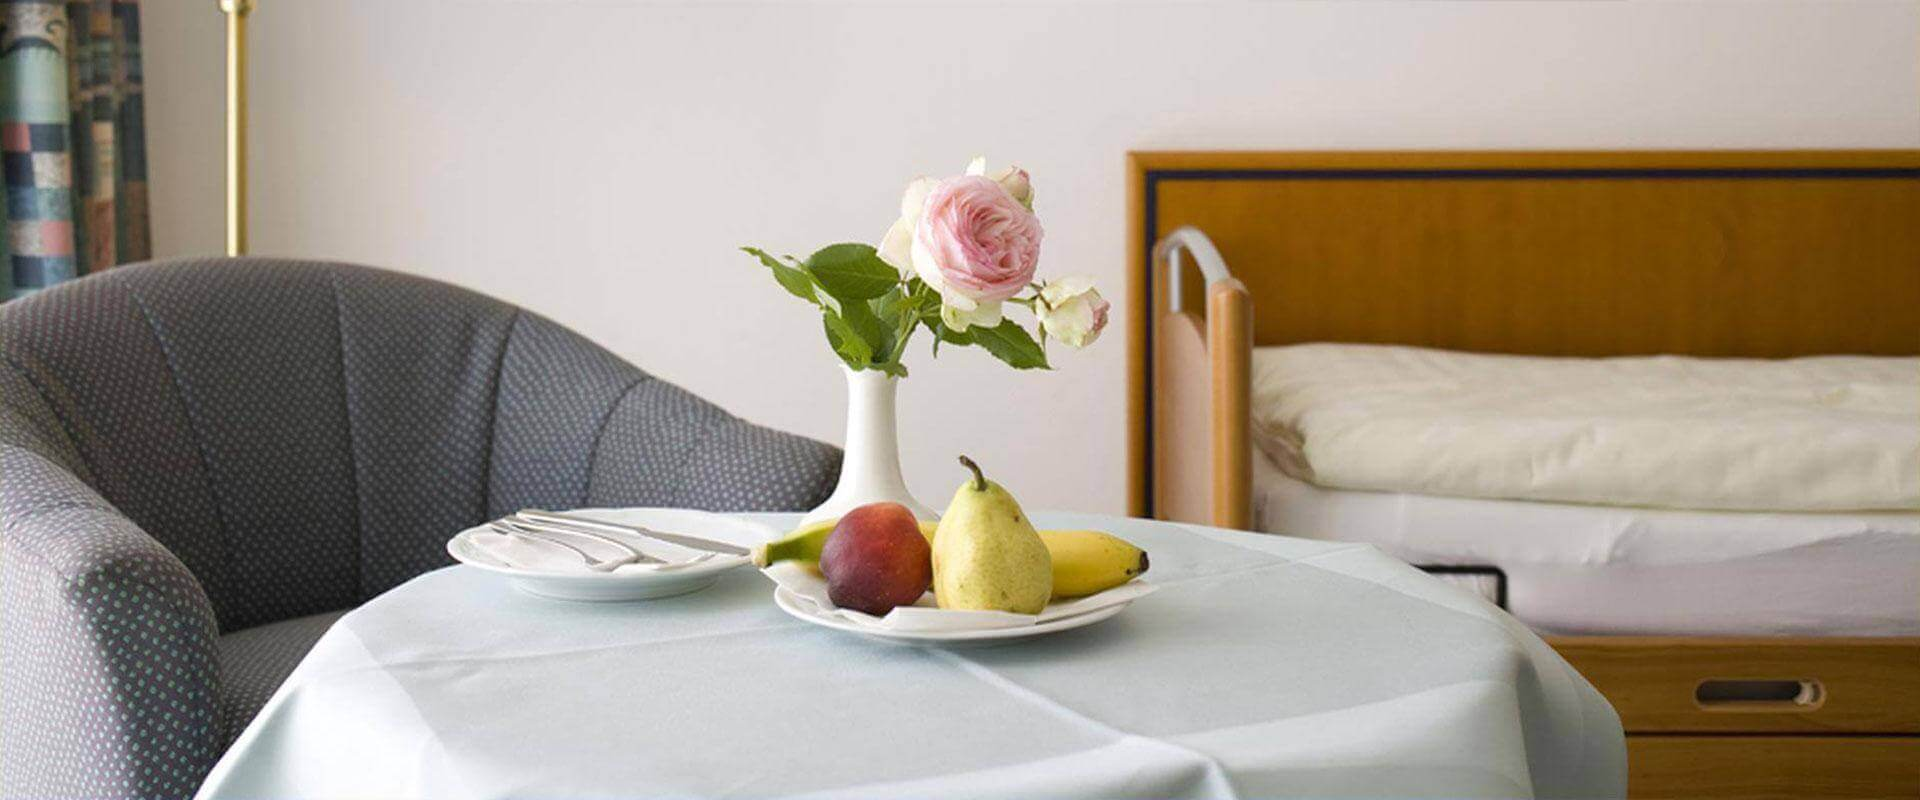 Obstteller in einem Zimmer der MEDIAN Frankenpark Klinik Bad Kissingen